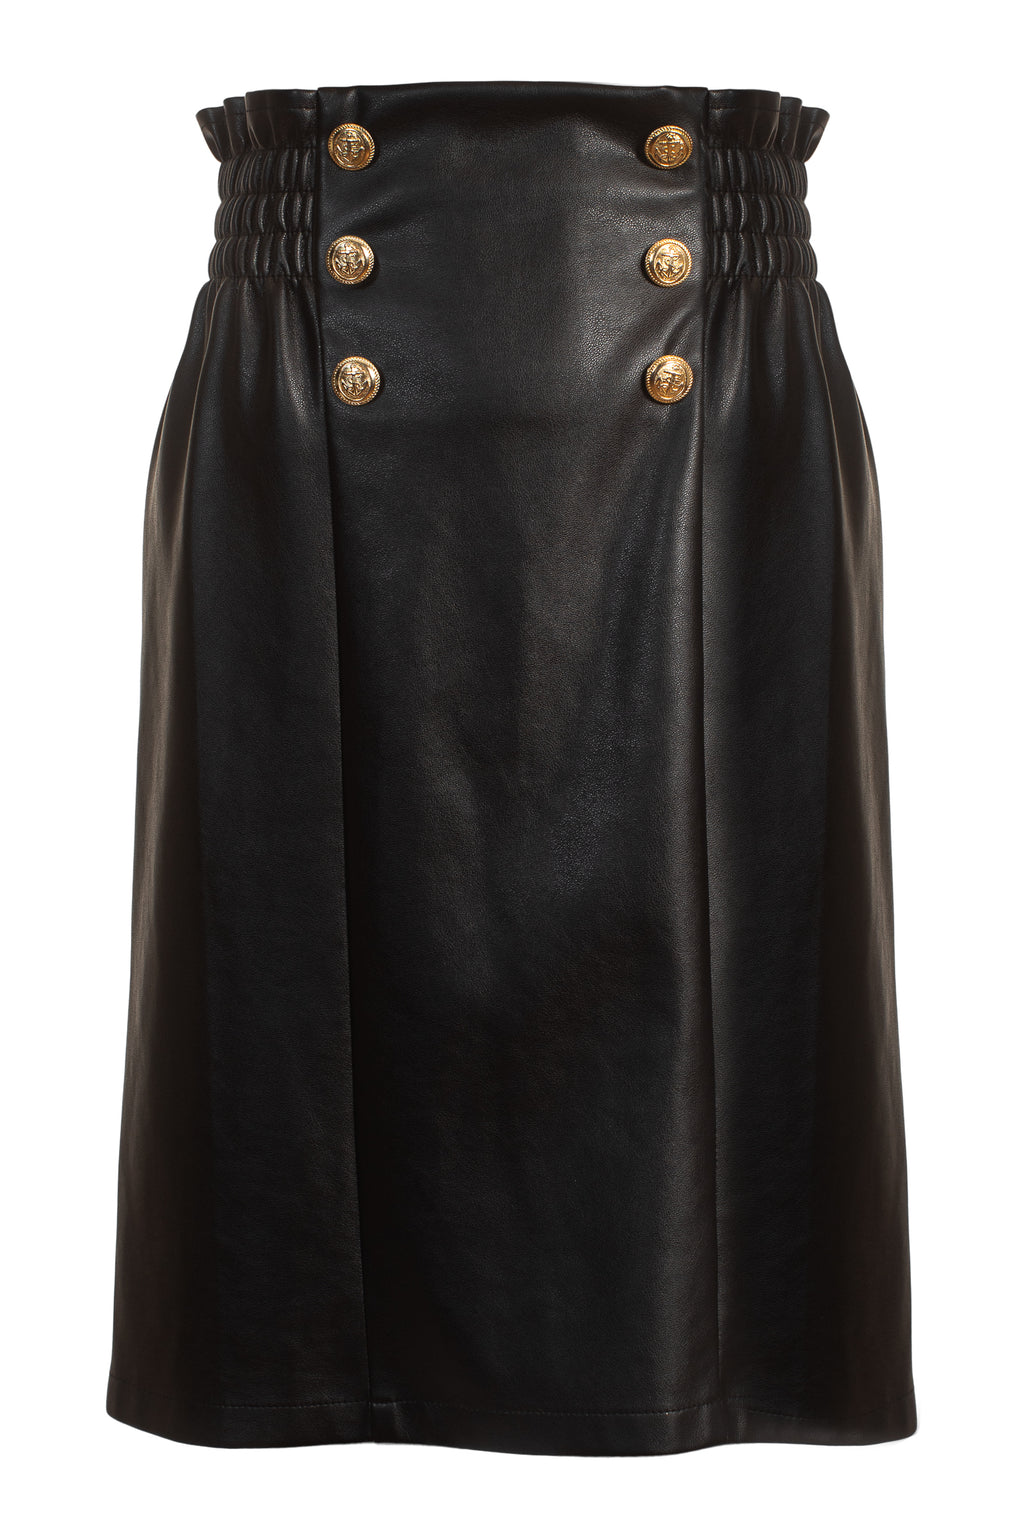 SS20 Keeley Skirt Vegan leather Black